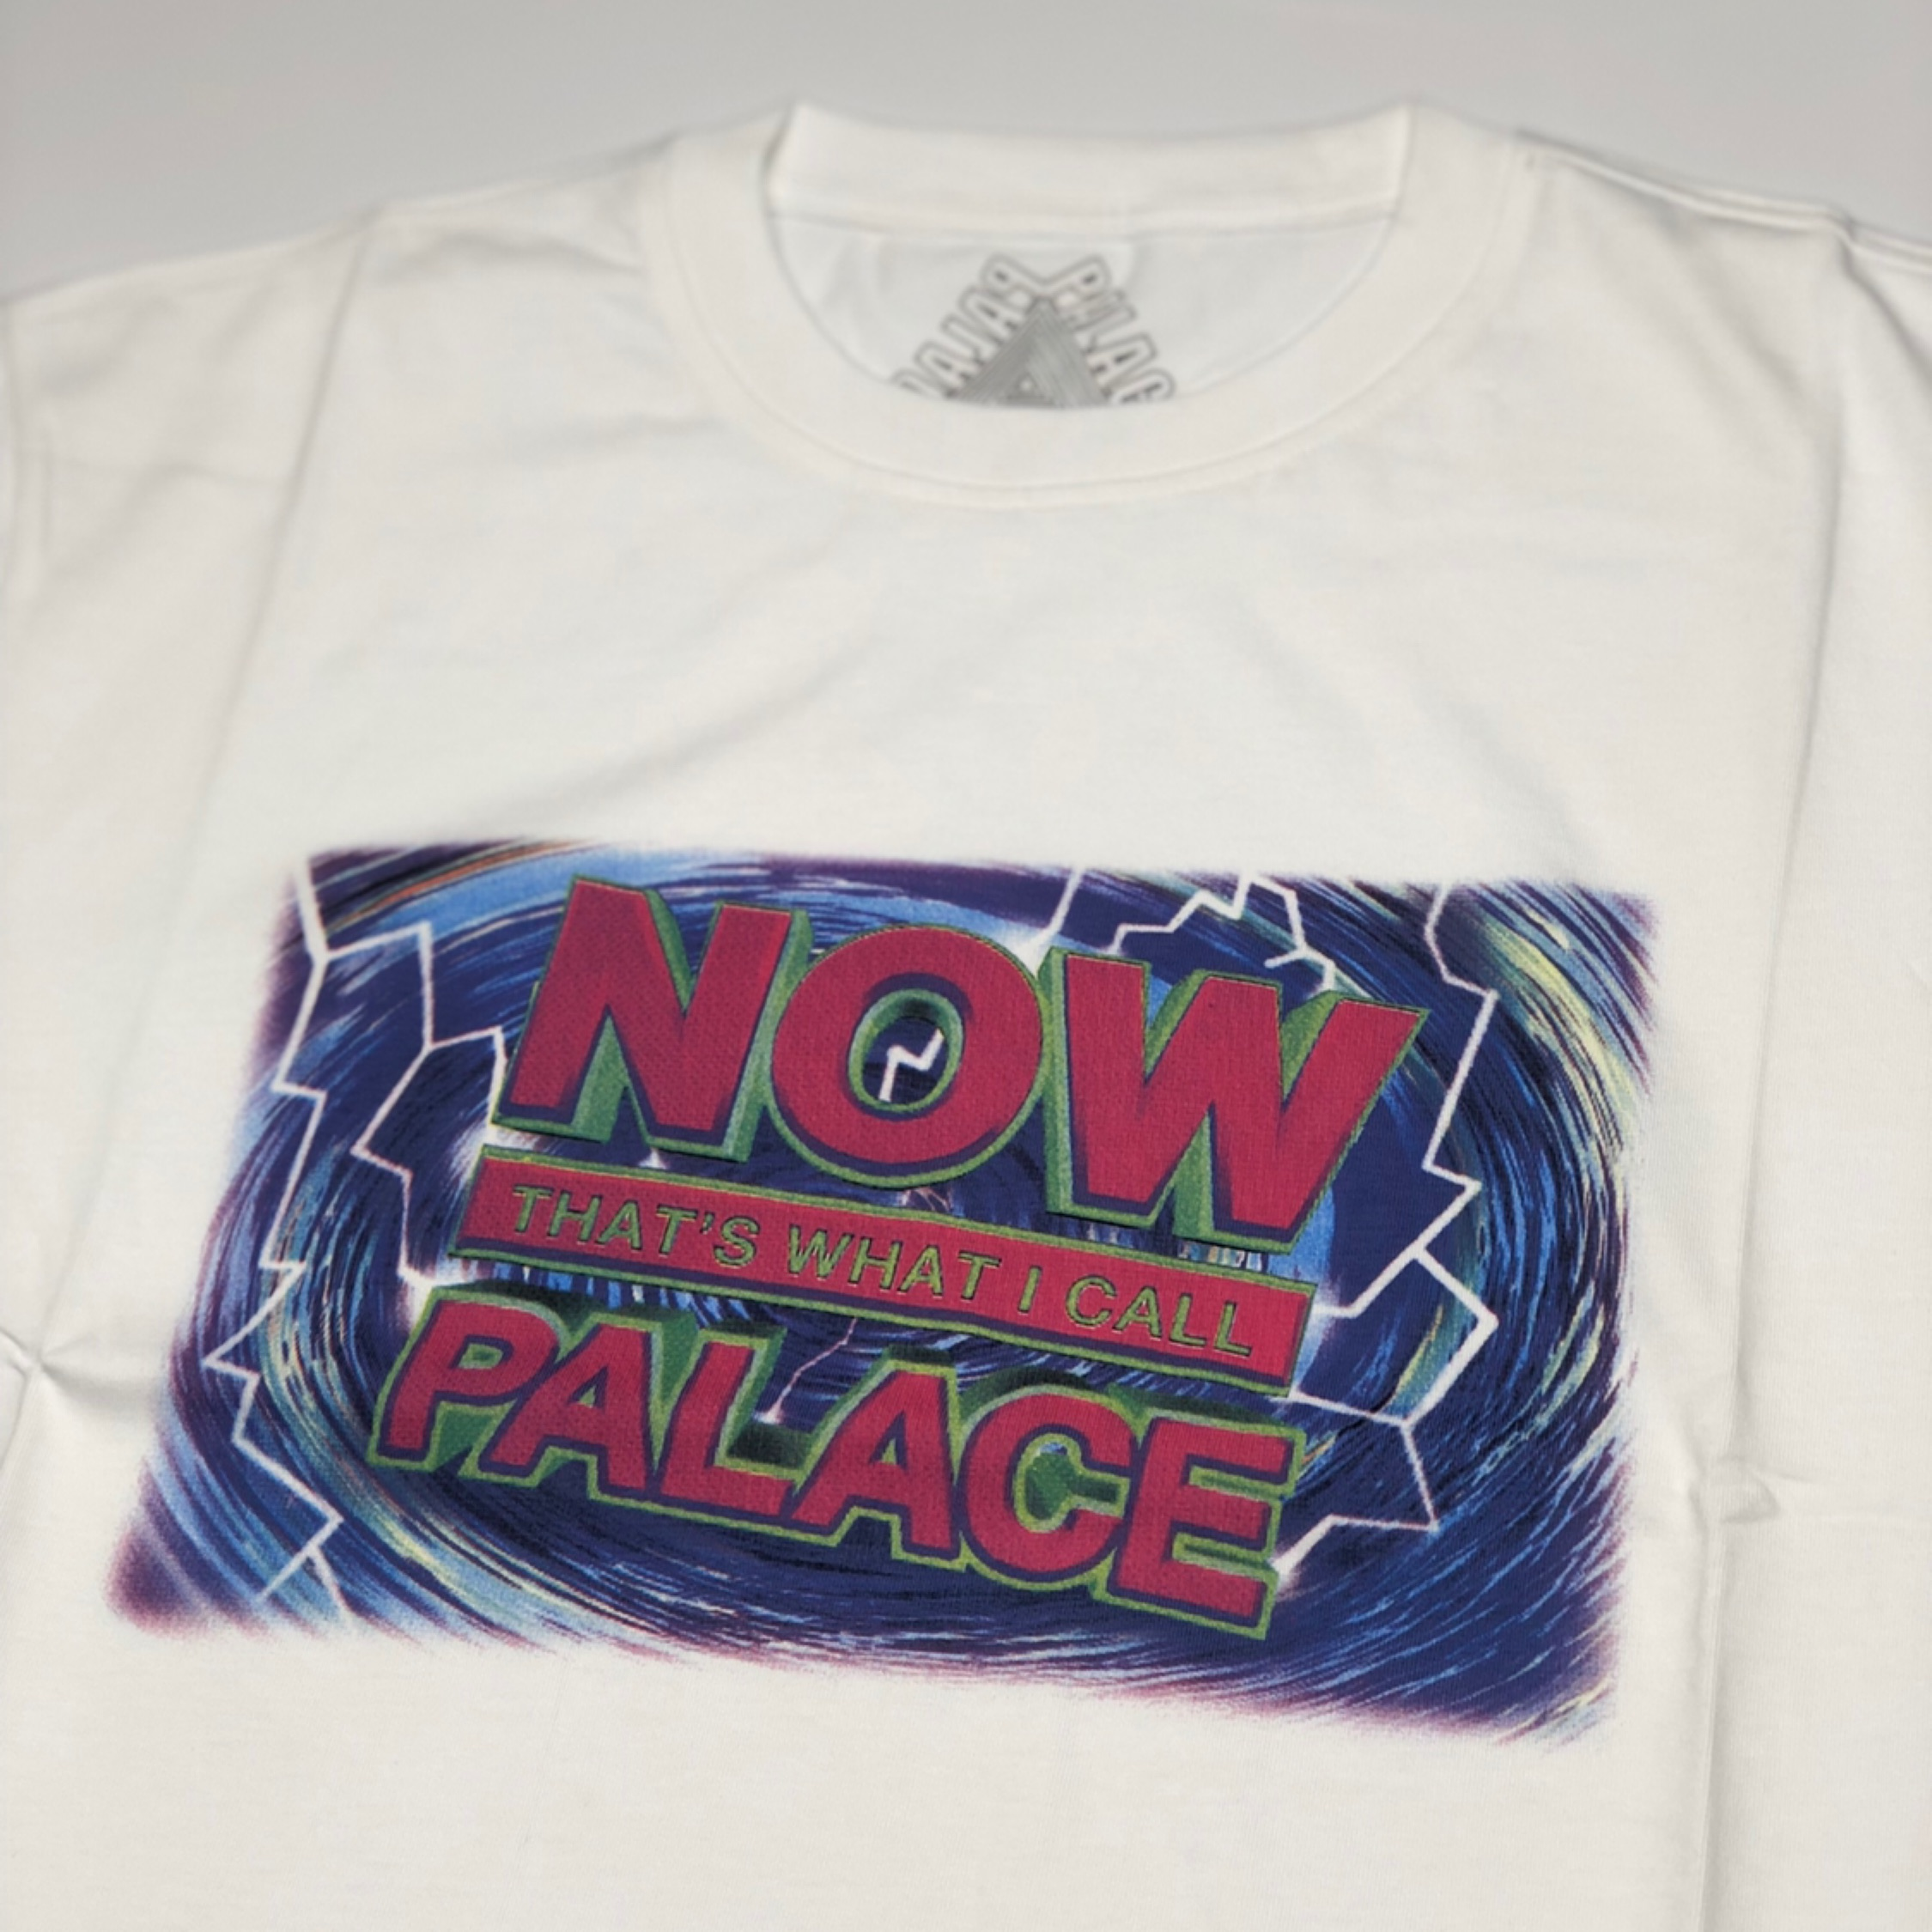 Palace Now That's What I Call Palace T Shirt Xl